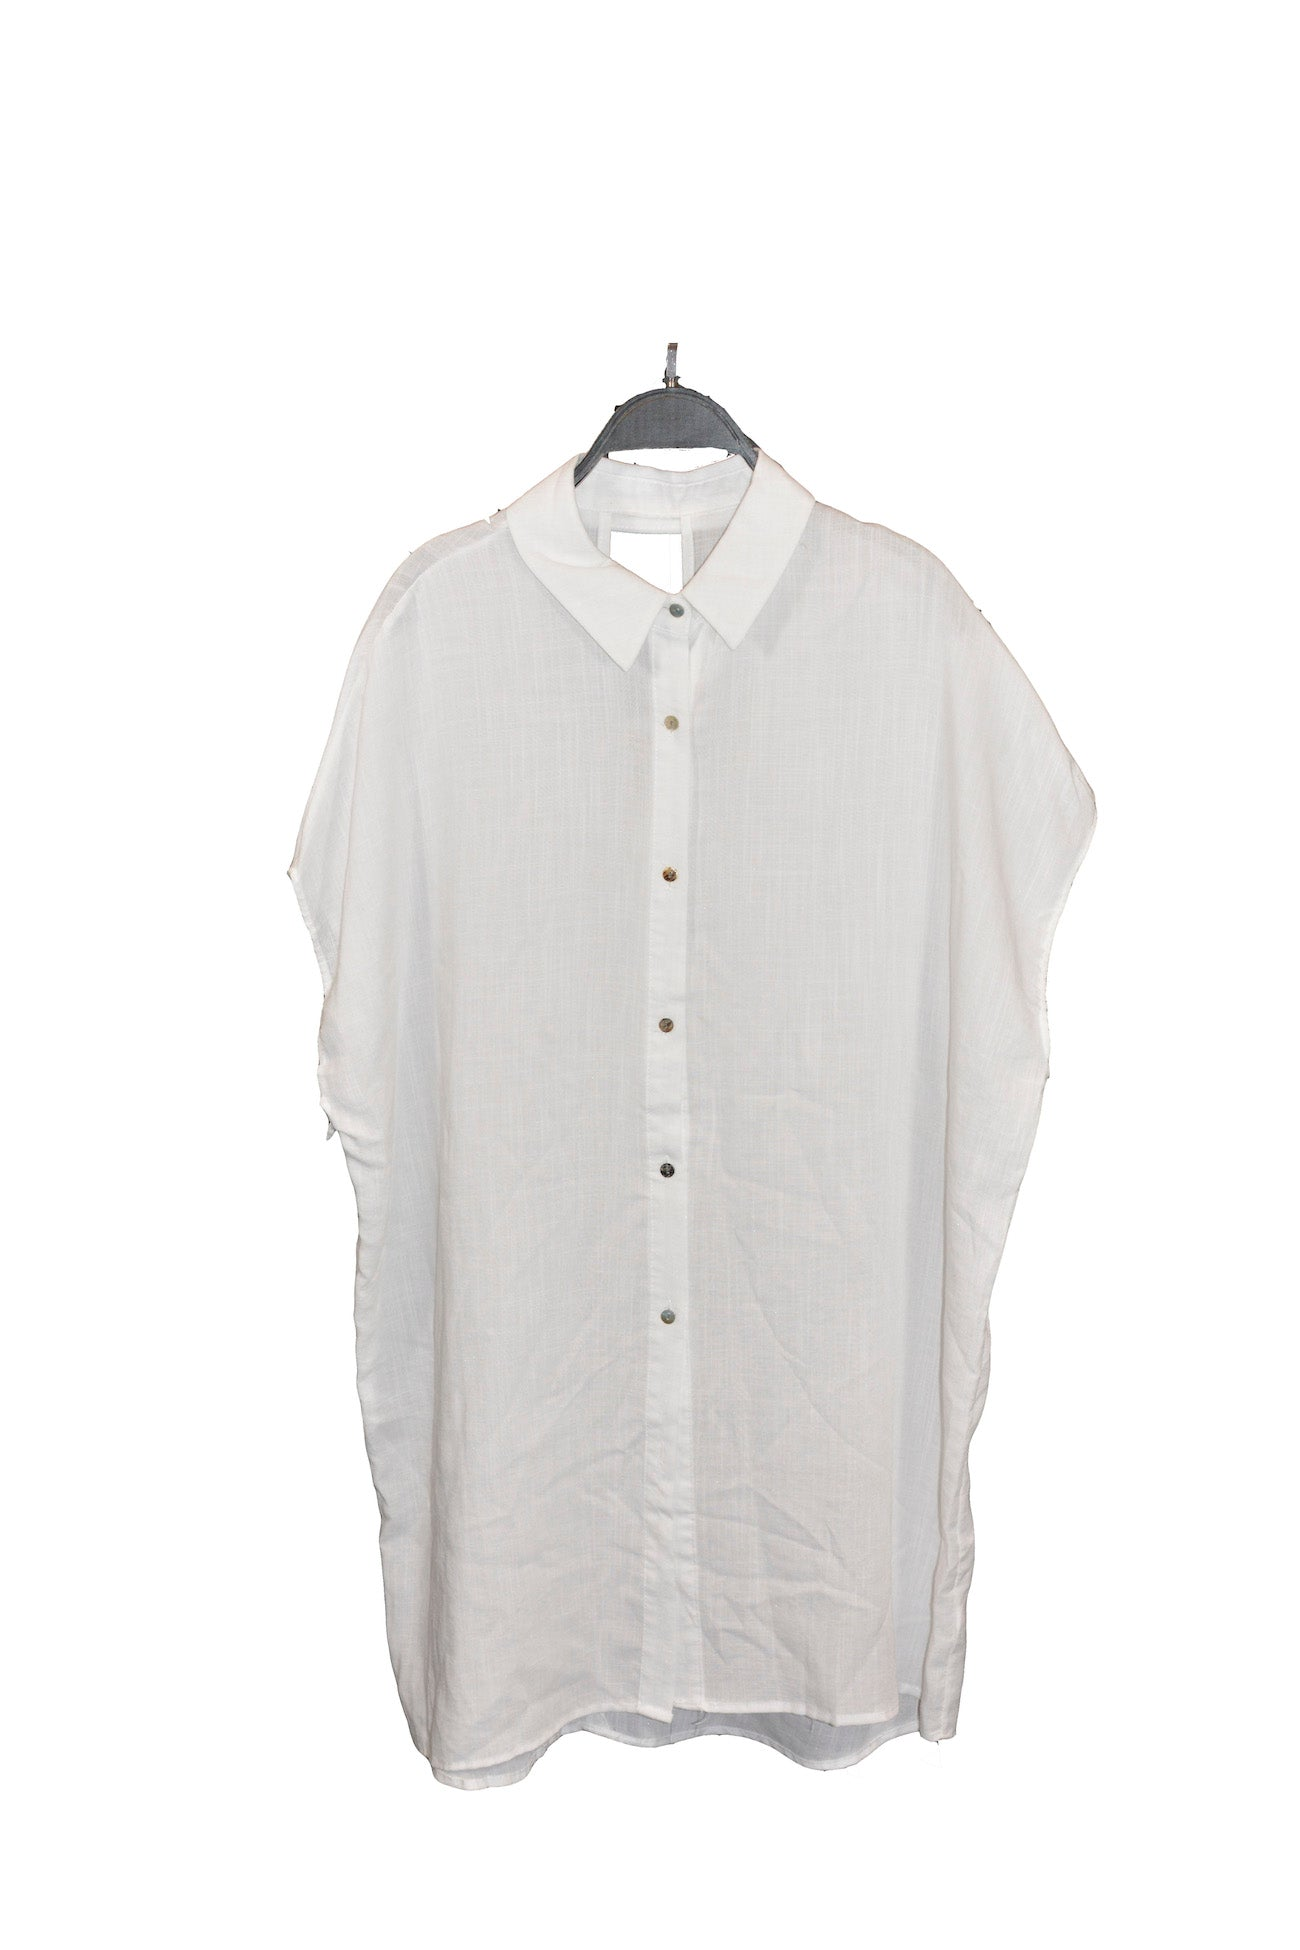 White Oversized Lightweight Shirt Dress with Dolman Sleeves